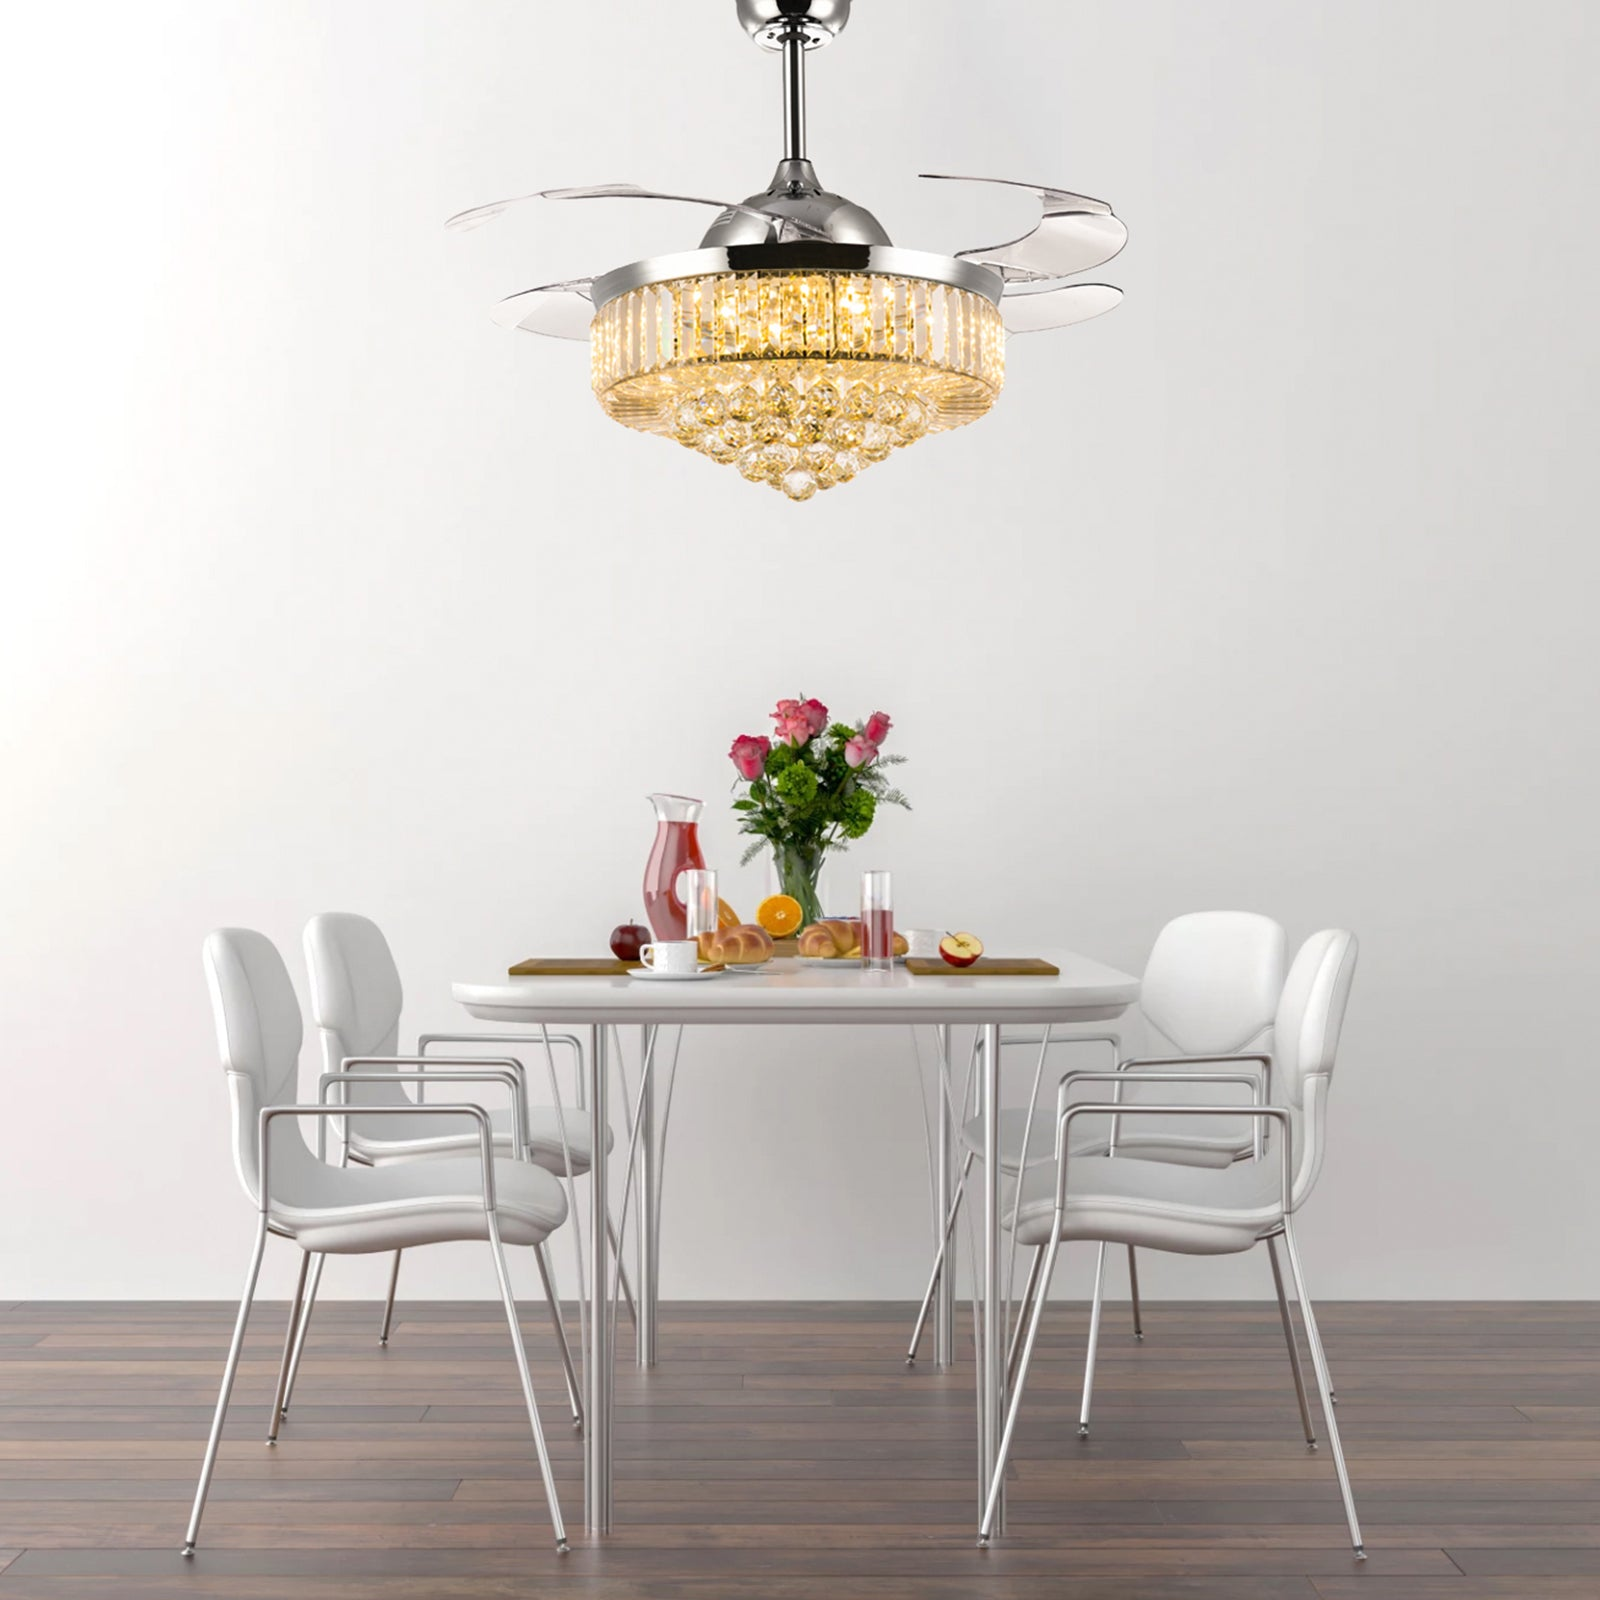 Elegant Retractable Ceiling Fan   Chandelier Ceiling Fan   Dining Room